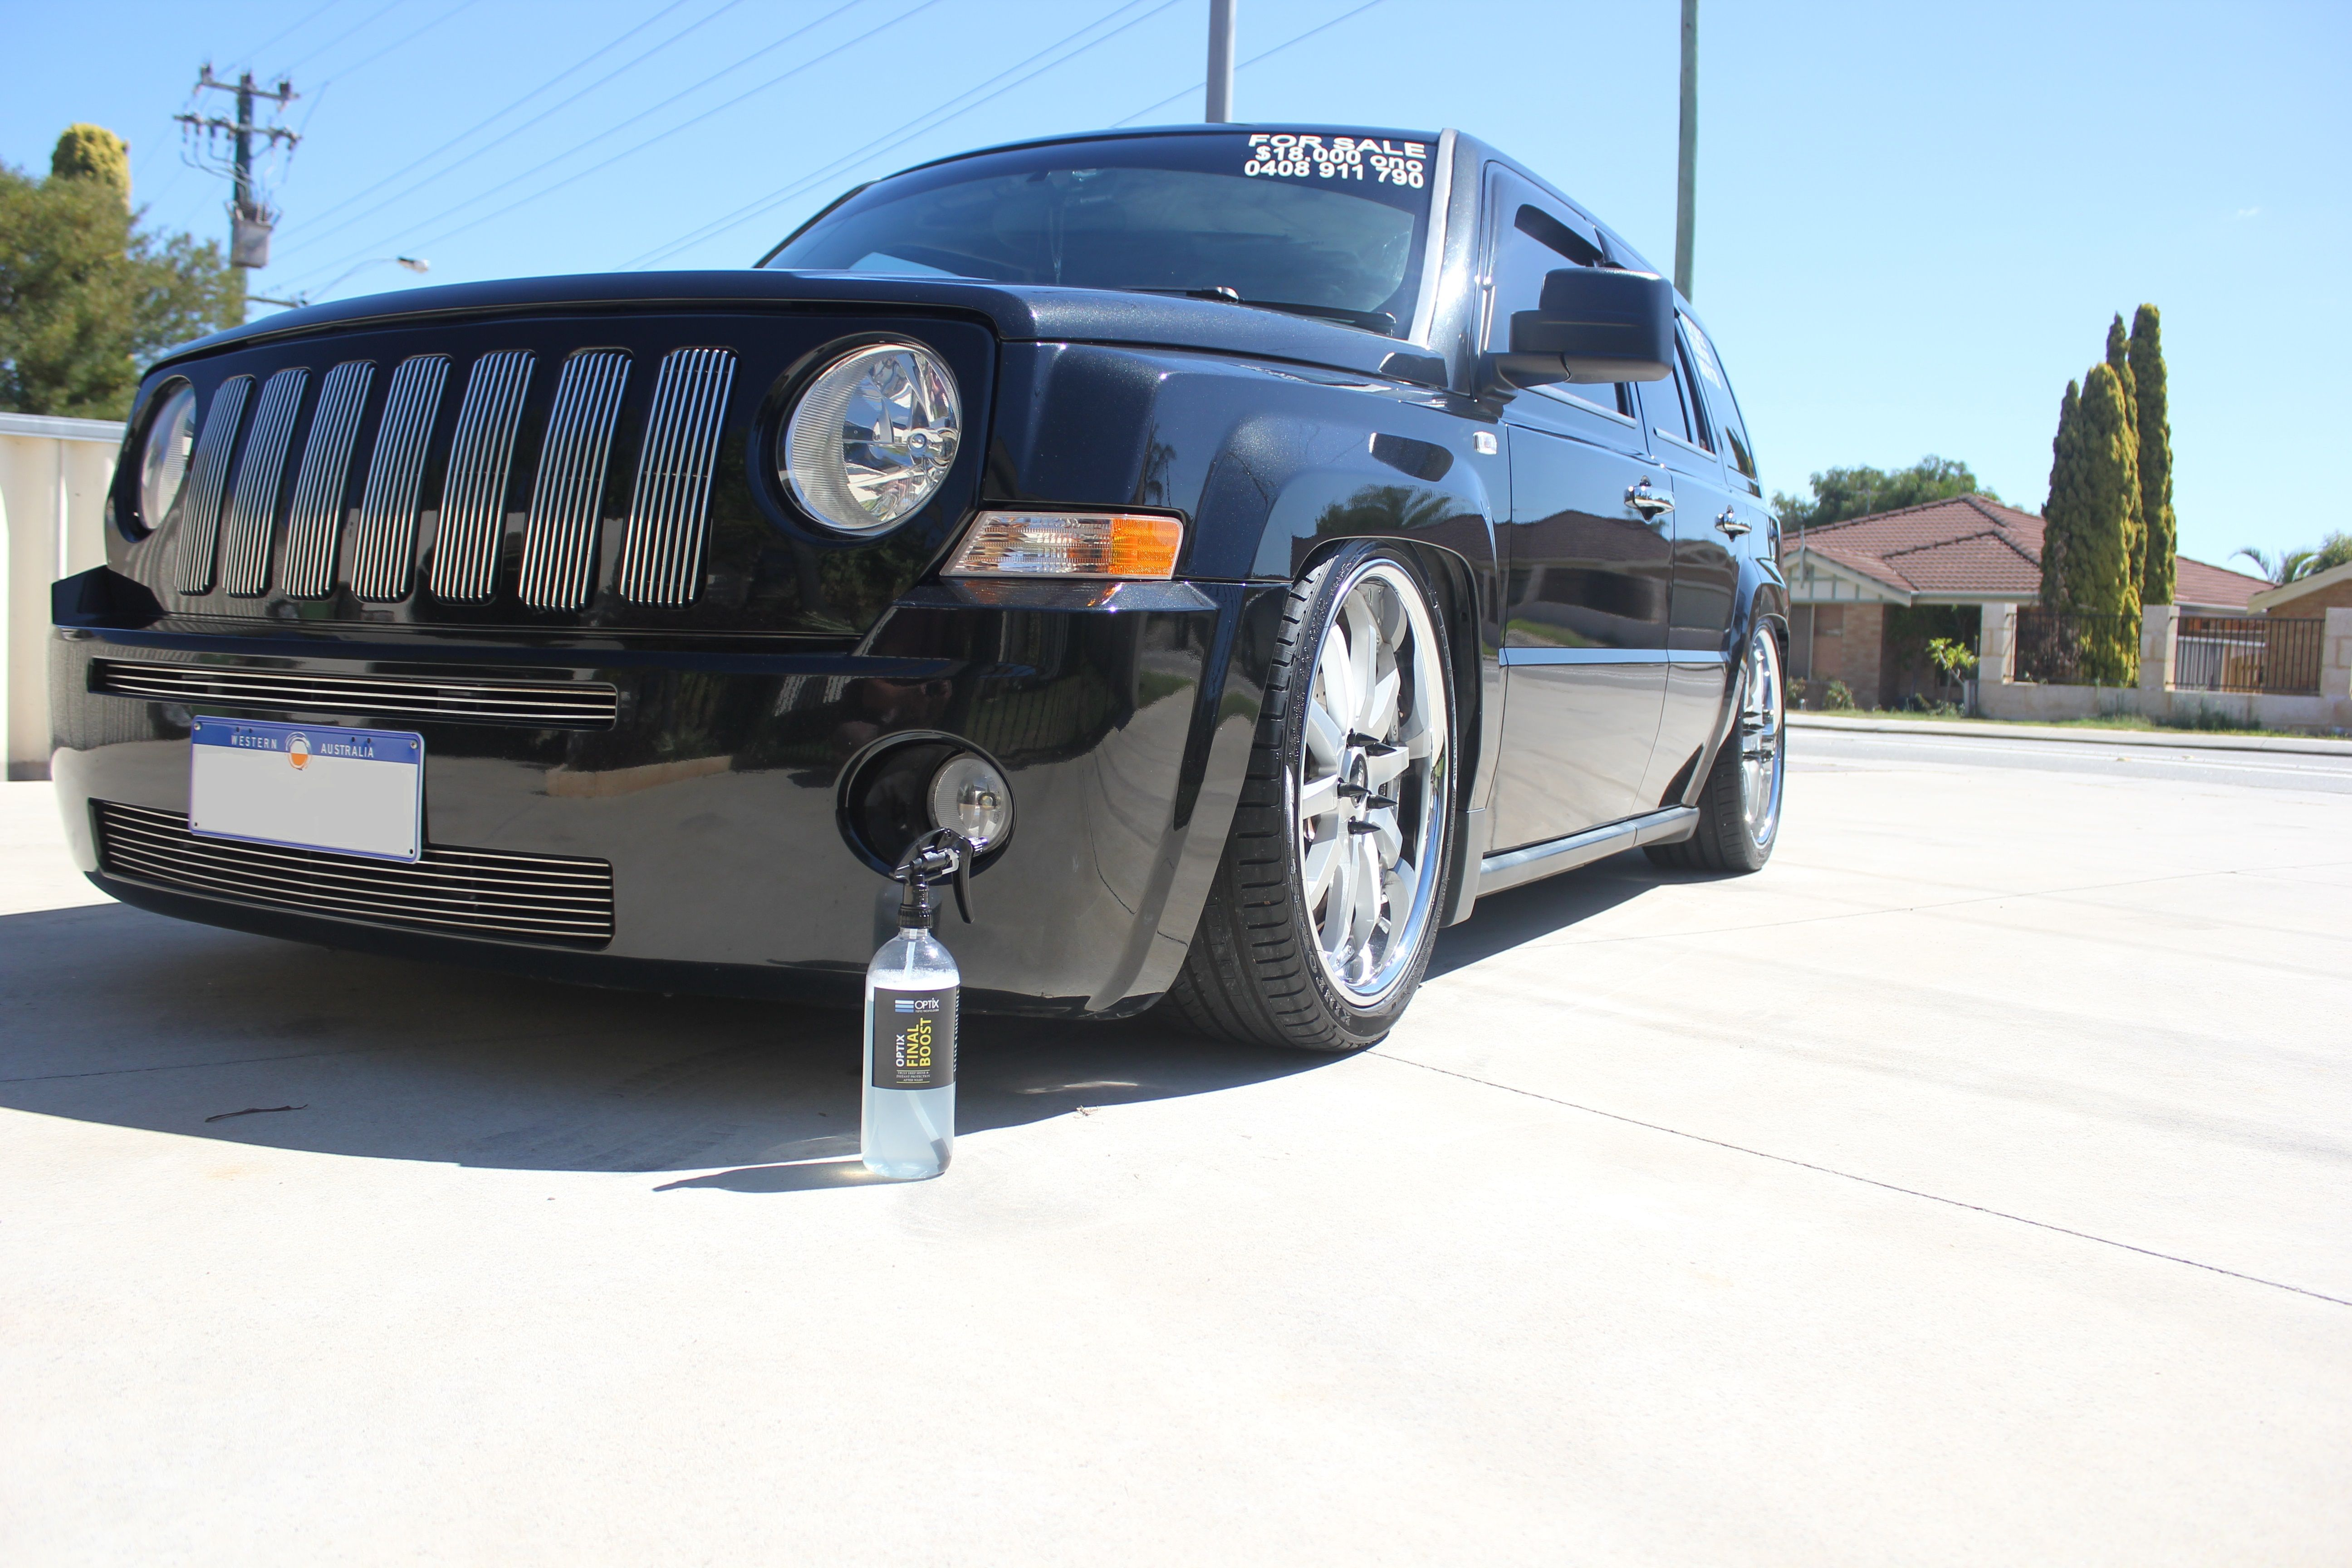 Bagged Vip Jeep Patriot Jeep Patriot Jeep Bags